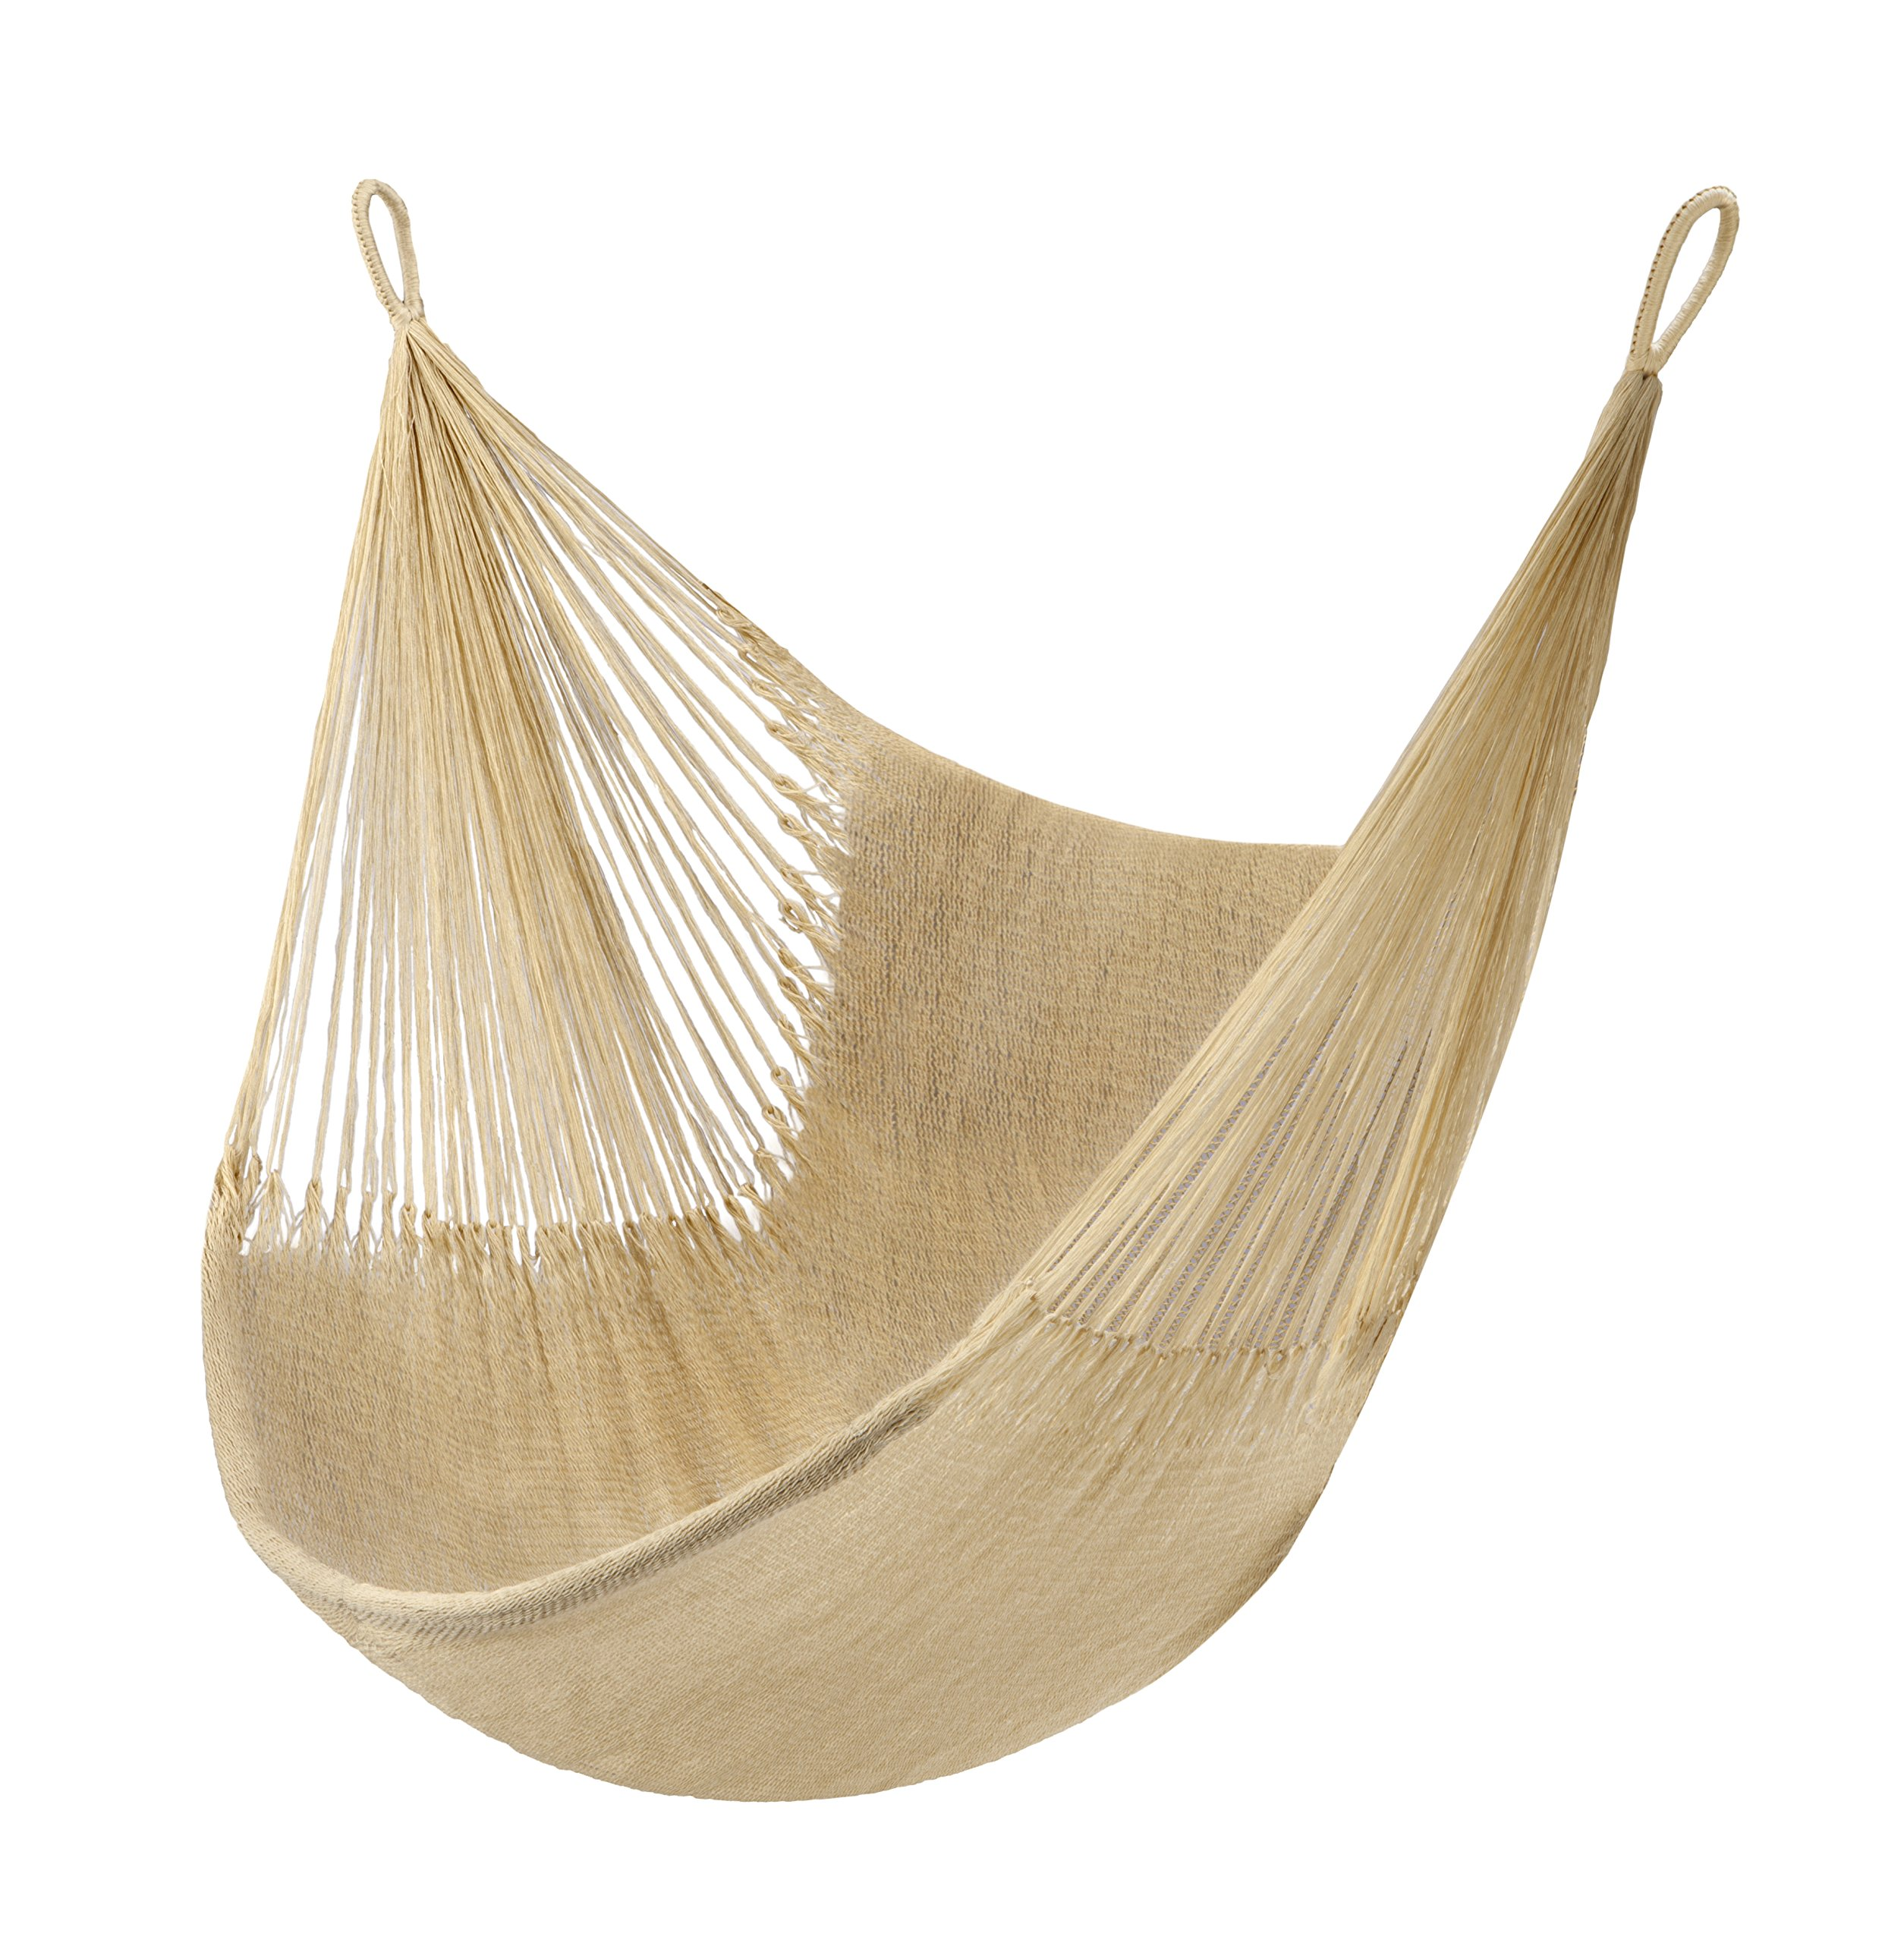 Yellow Leaf Hammocks SHA Hammock, Big Sur - 100% hand-woven with over 2 miles of yarn Maximum Capacity: 330 lbs Optimal Hanging Distance: 3-5 ft - patio-furniture, patio, hammocks - 916bm1M8ZlL -